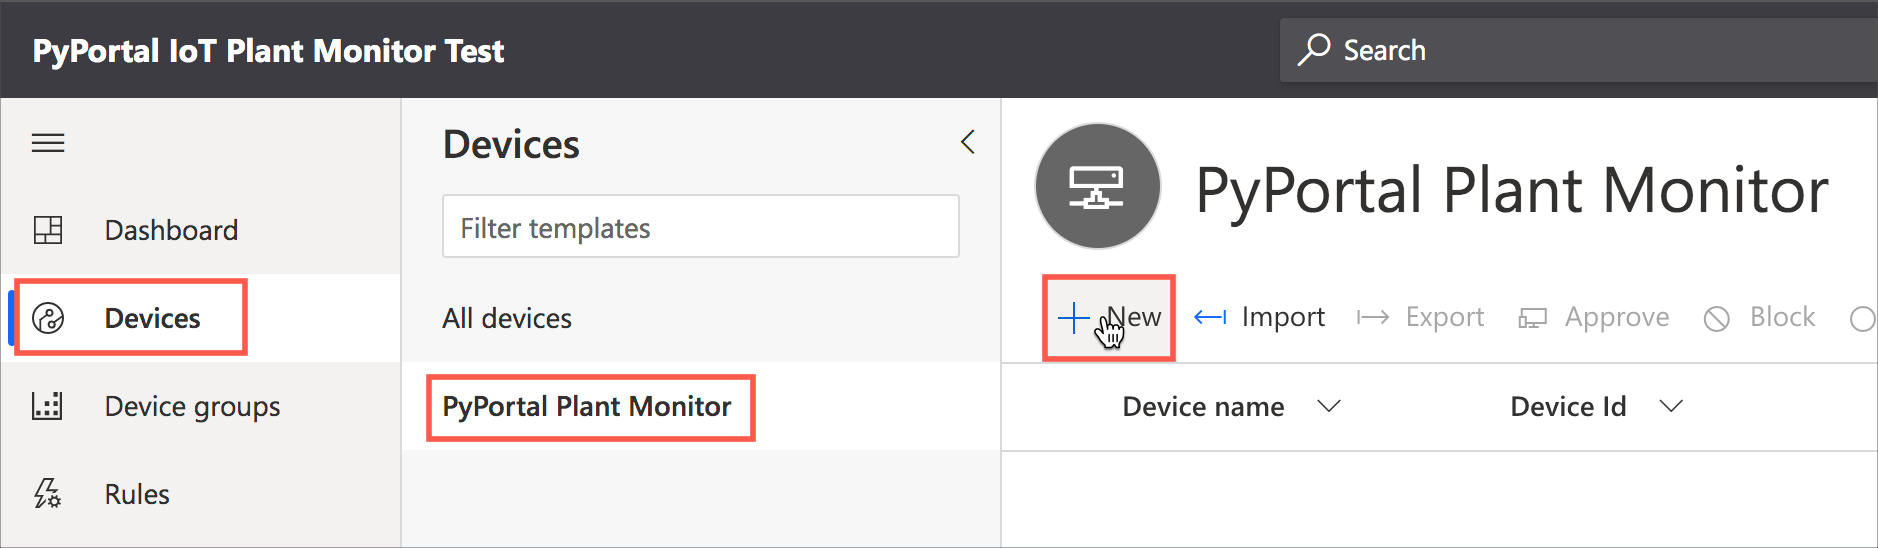 Selecting the devices tab, then the PyPortal Plant Monitor template, then the New button